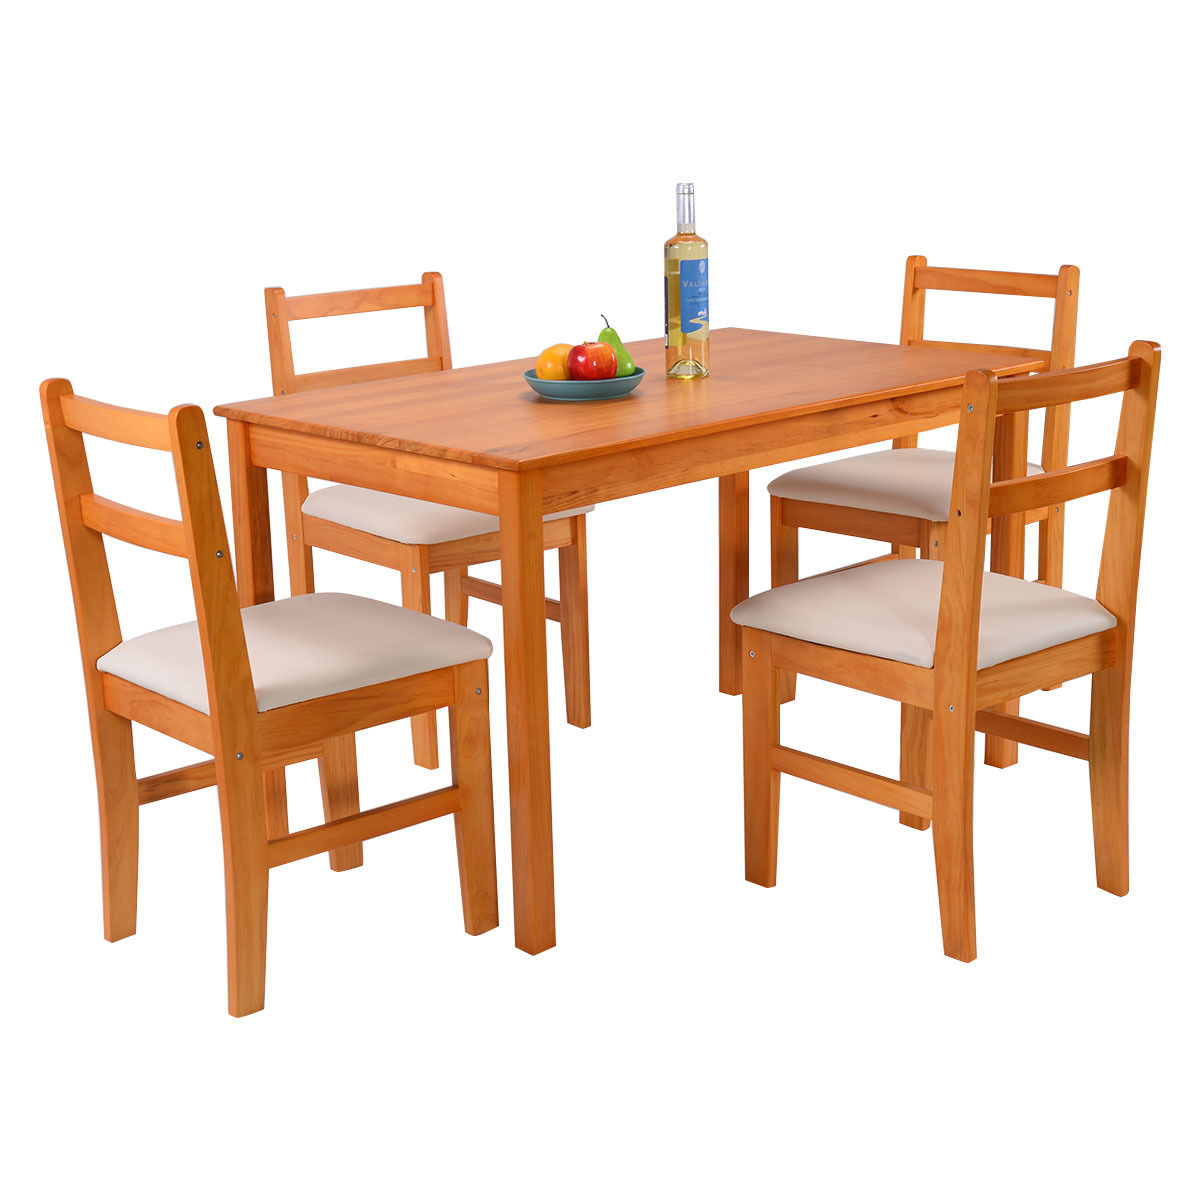 Click here to buy Costway 5 Pcs Pine Wood Dining Room Set Table And 4 Upholstered Chair Breakfast Furniture by Costway.